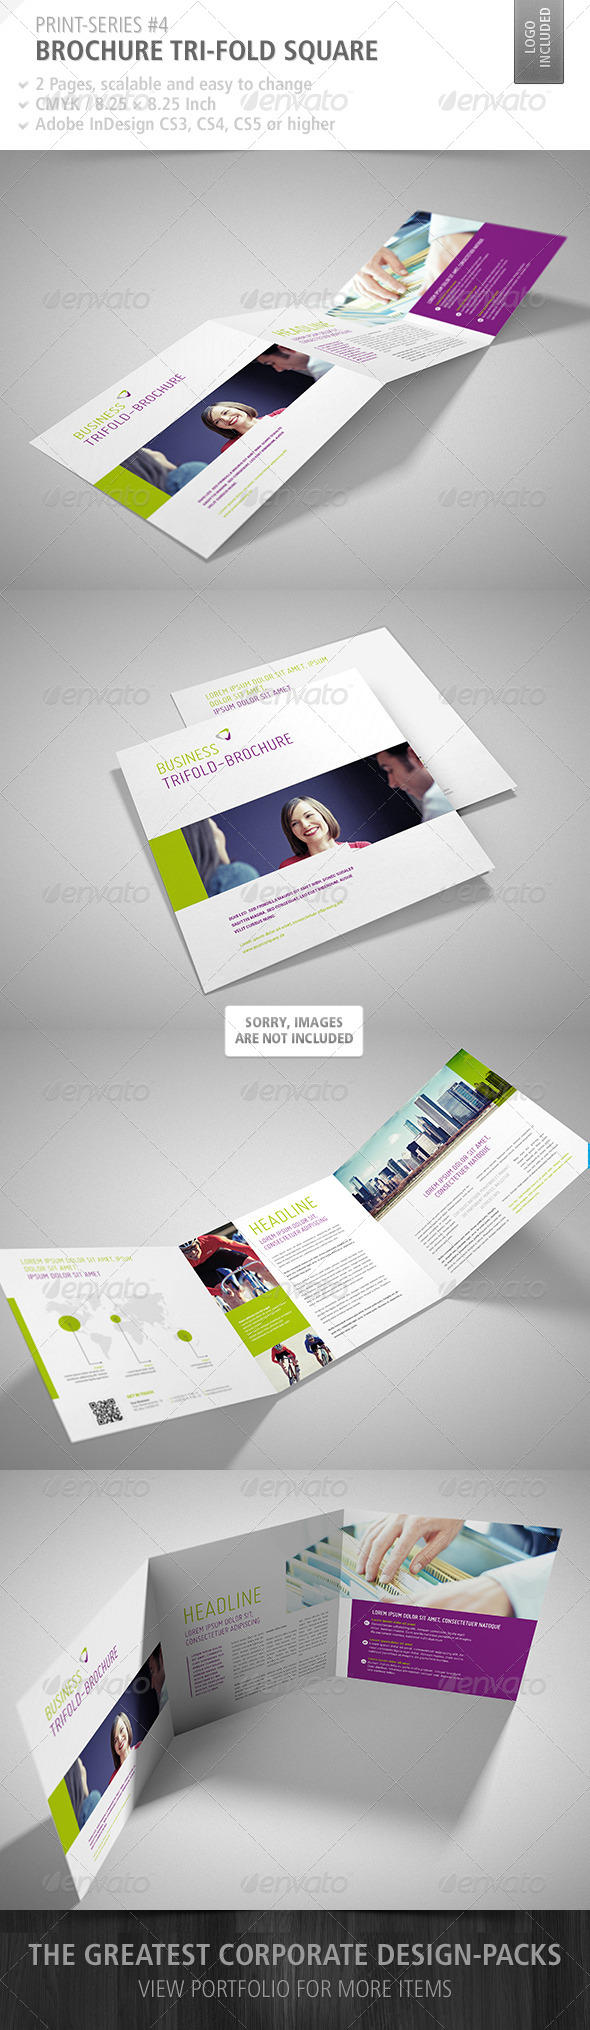 GraphicRiver Brochure Tri-Fold Square Print-Series #4 4696366